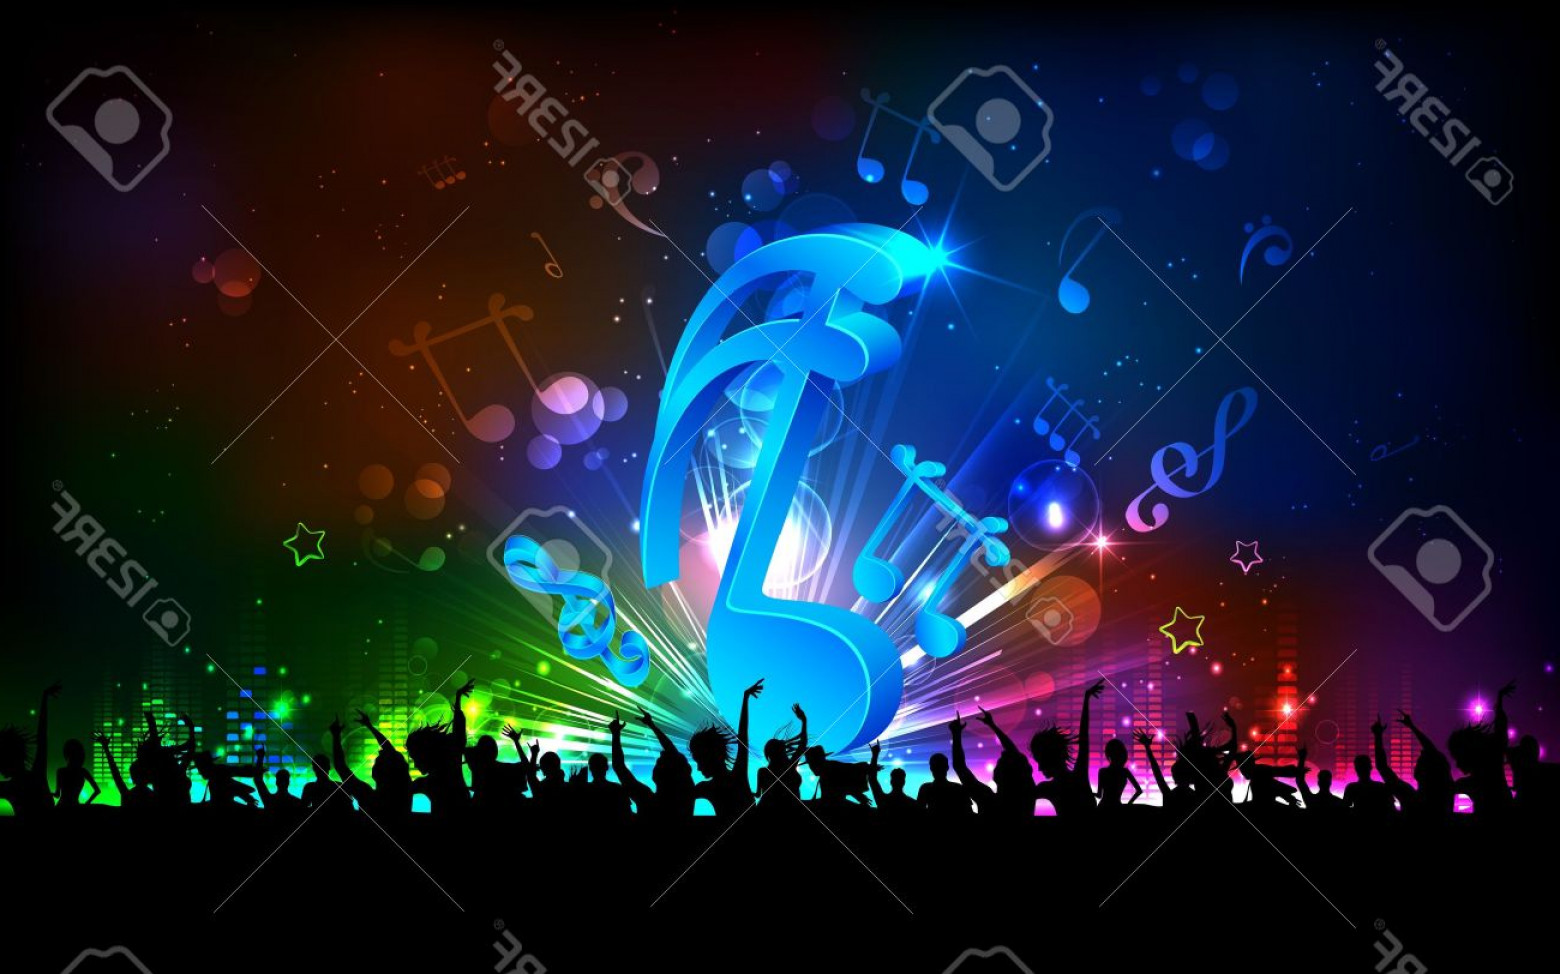 Free Vector Backgrounds Illustrator Free Download: Photoillustration Of Abstract Musical Note For Party Background